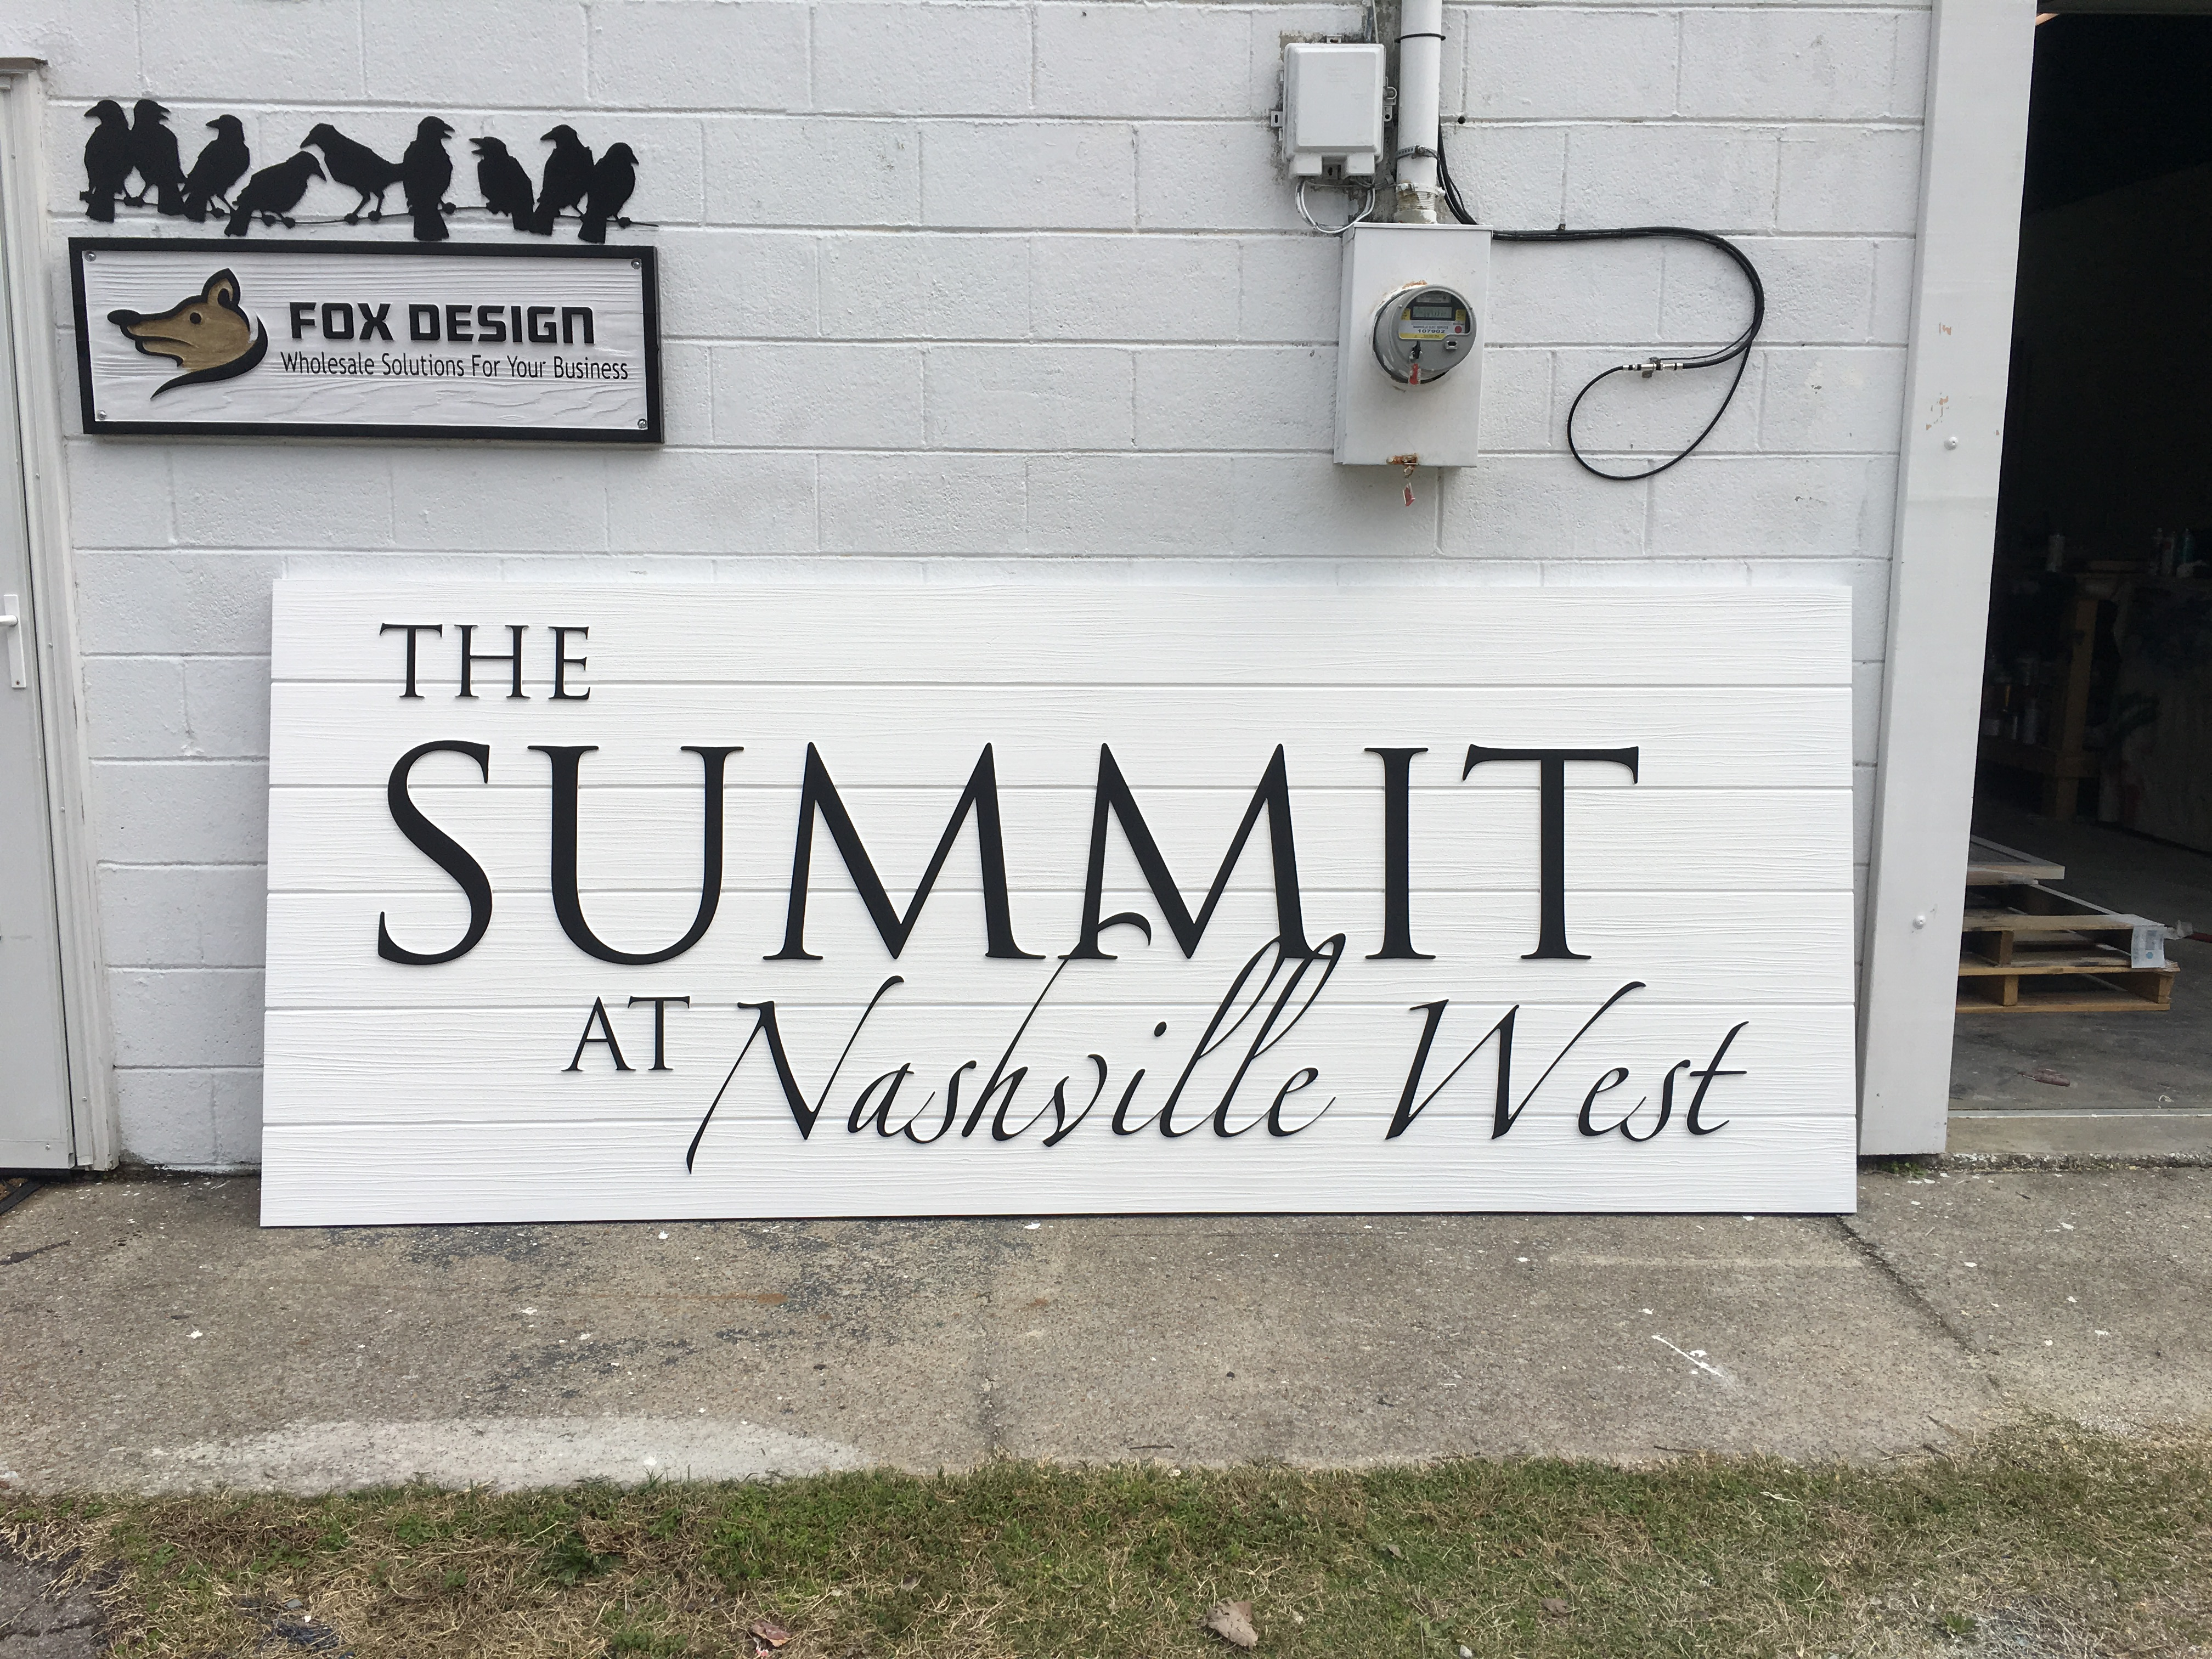 The Summit @ Nashville West